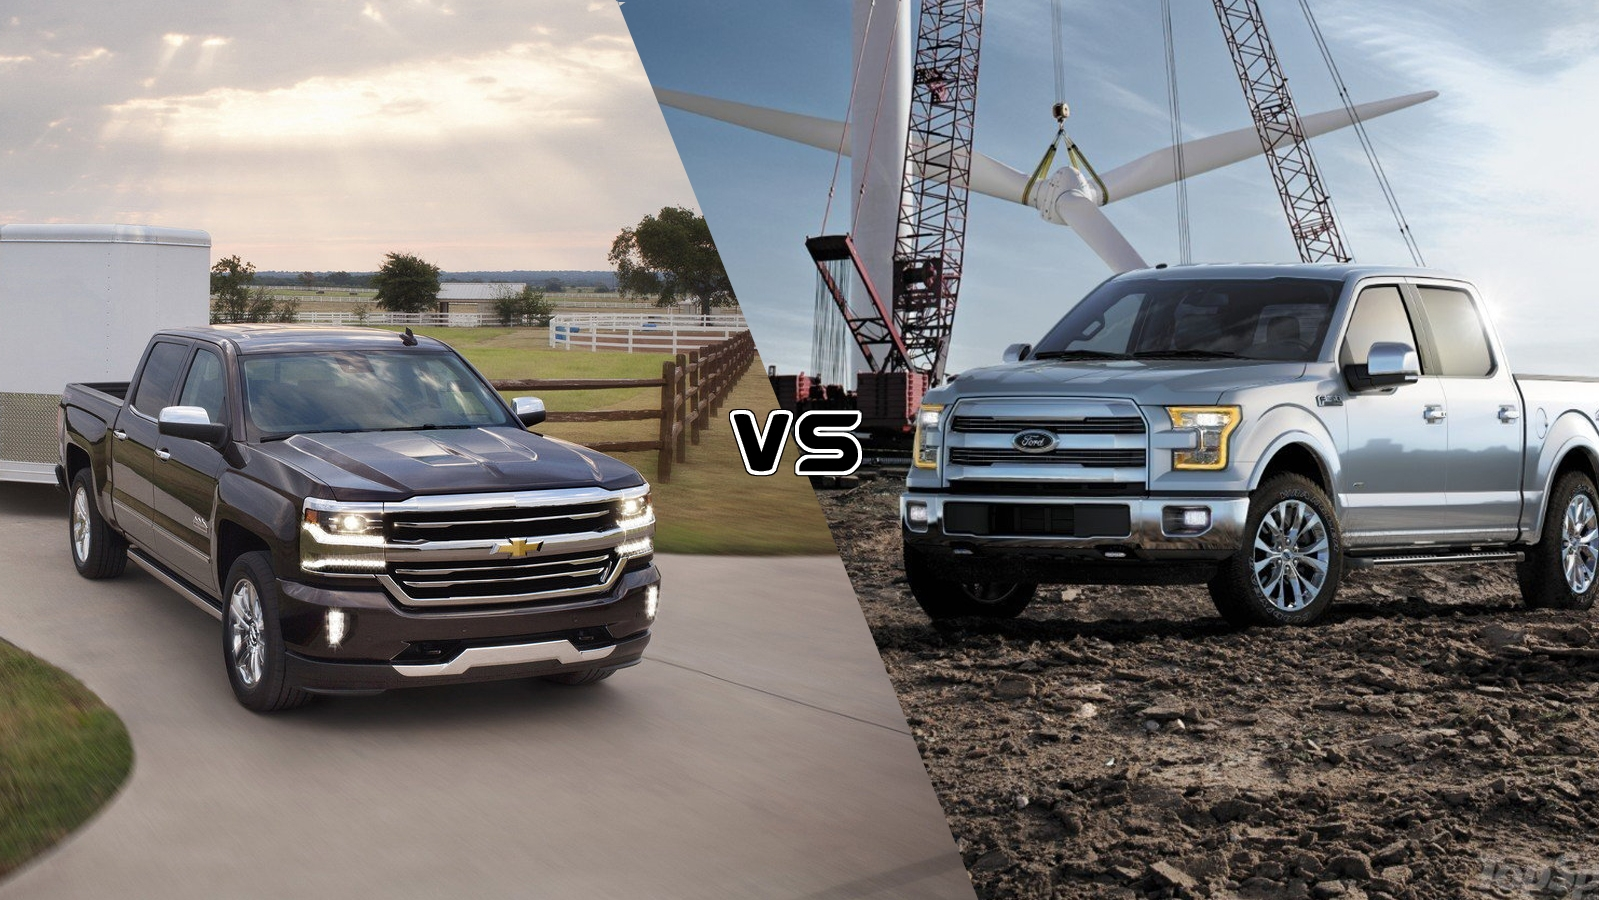 2016 chevy silverado vs 2016 ford f 150 news gallery top speed. Black Bedroom Furniture Sets. Home Design Ideas